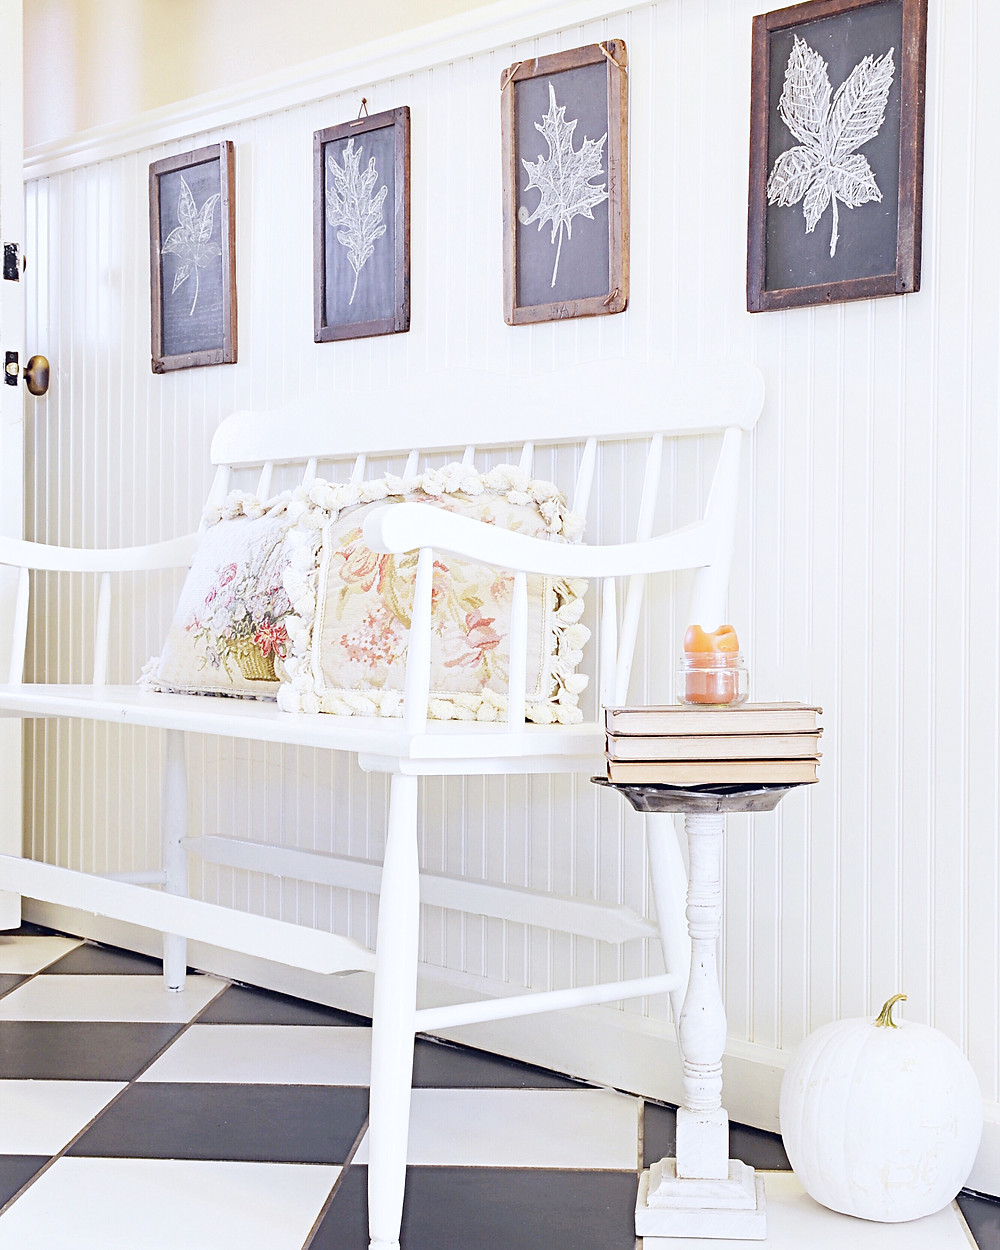 Entryway decorated for fall with vintage children's